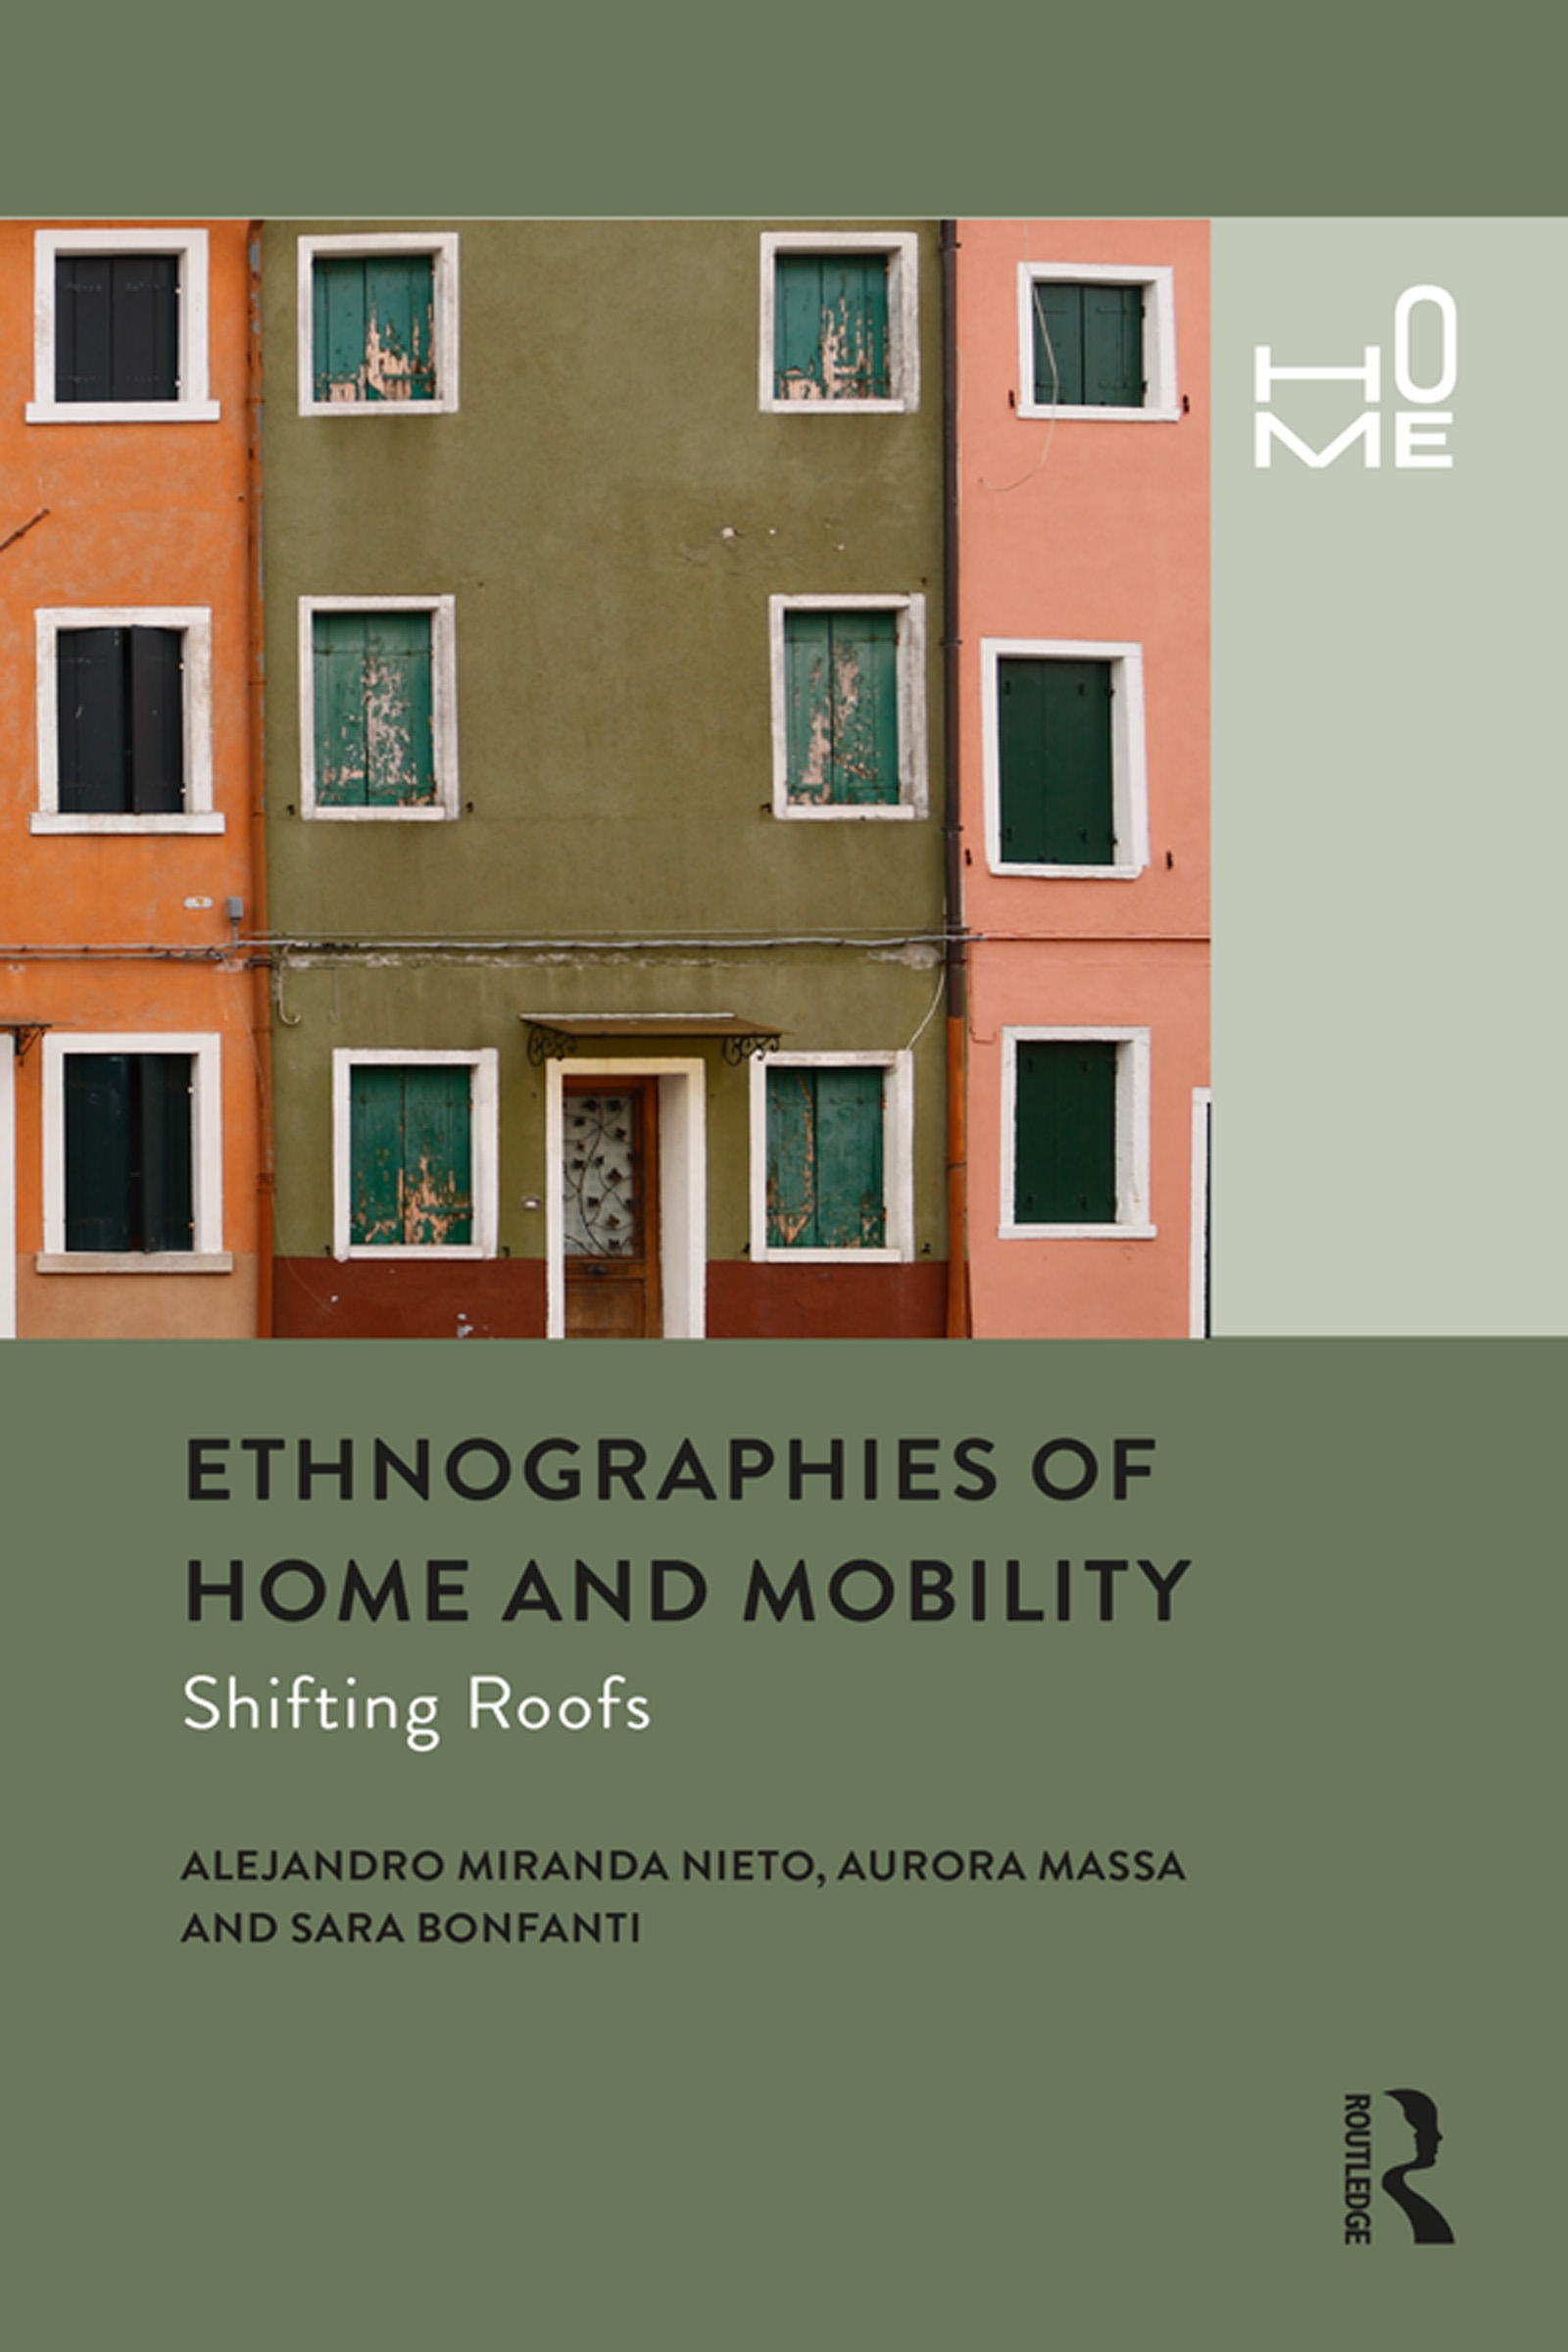 Ethnographies of Home and Mobility in Europe